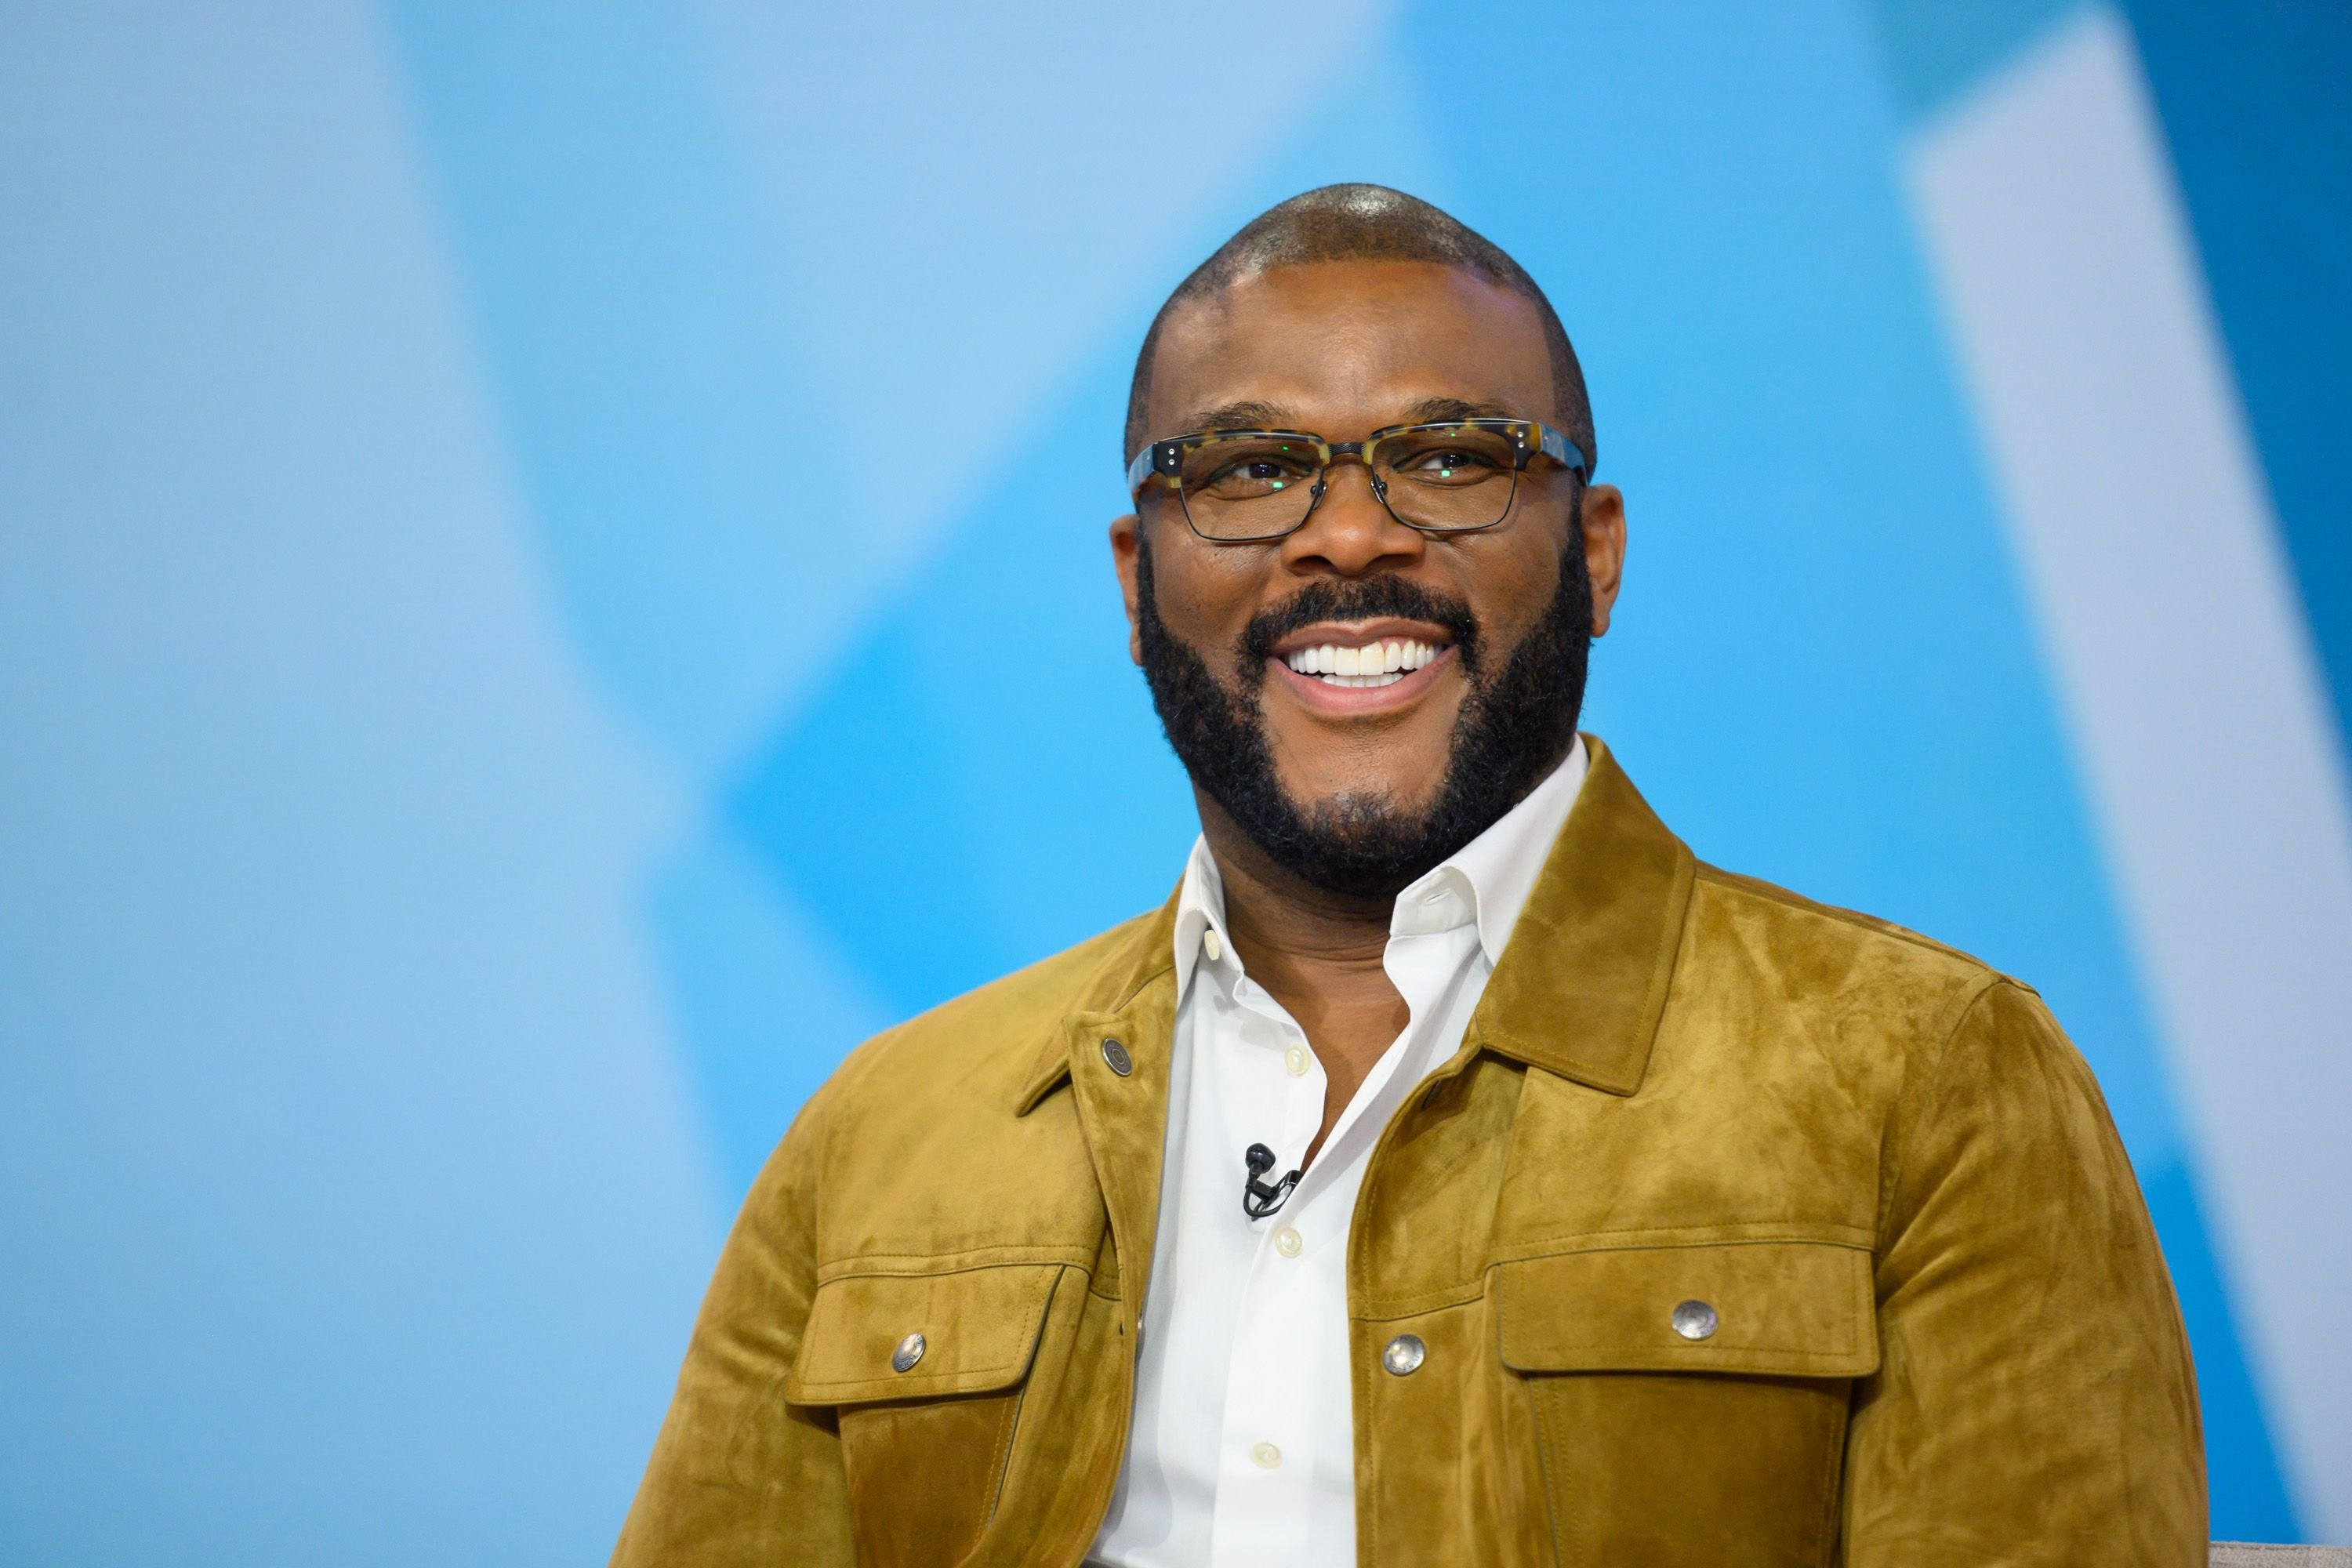 """Tyler Perry during a sit-down with """"Today,"""" on January 13, 2020.    Source: Getty Images"""